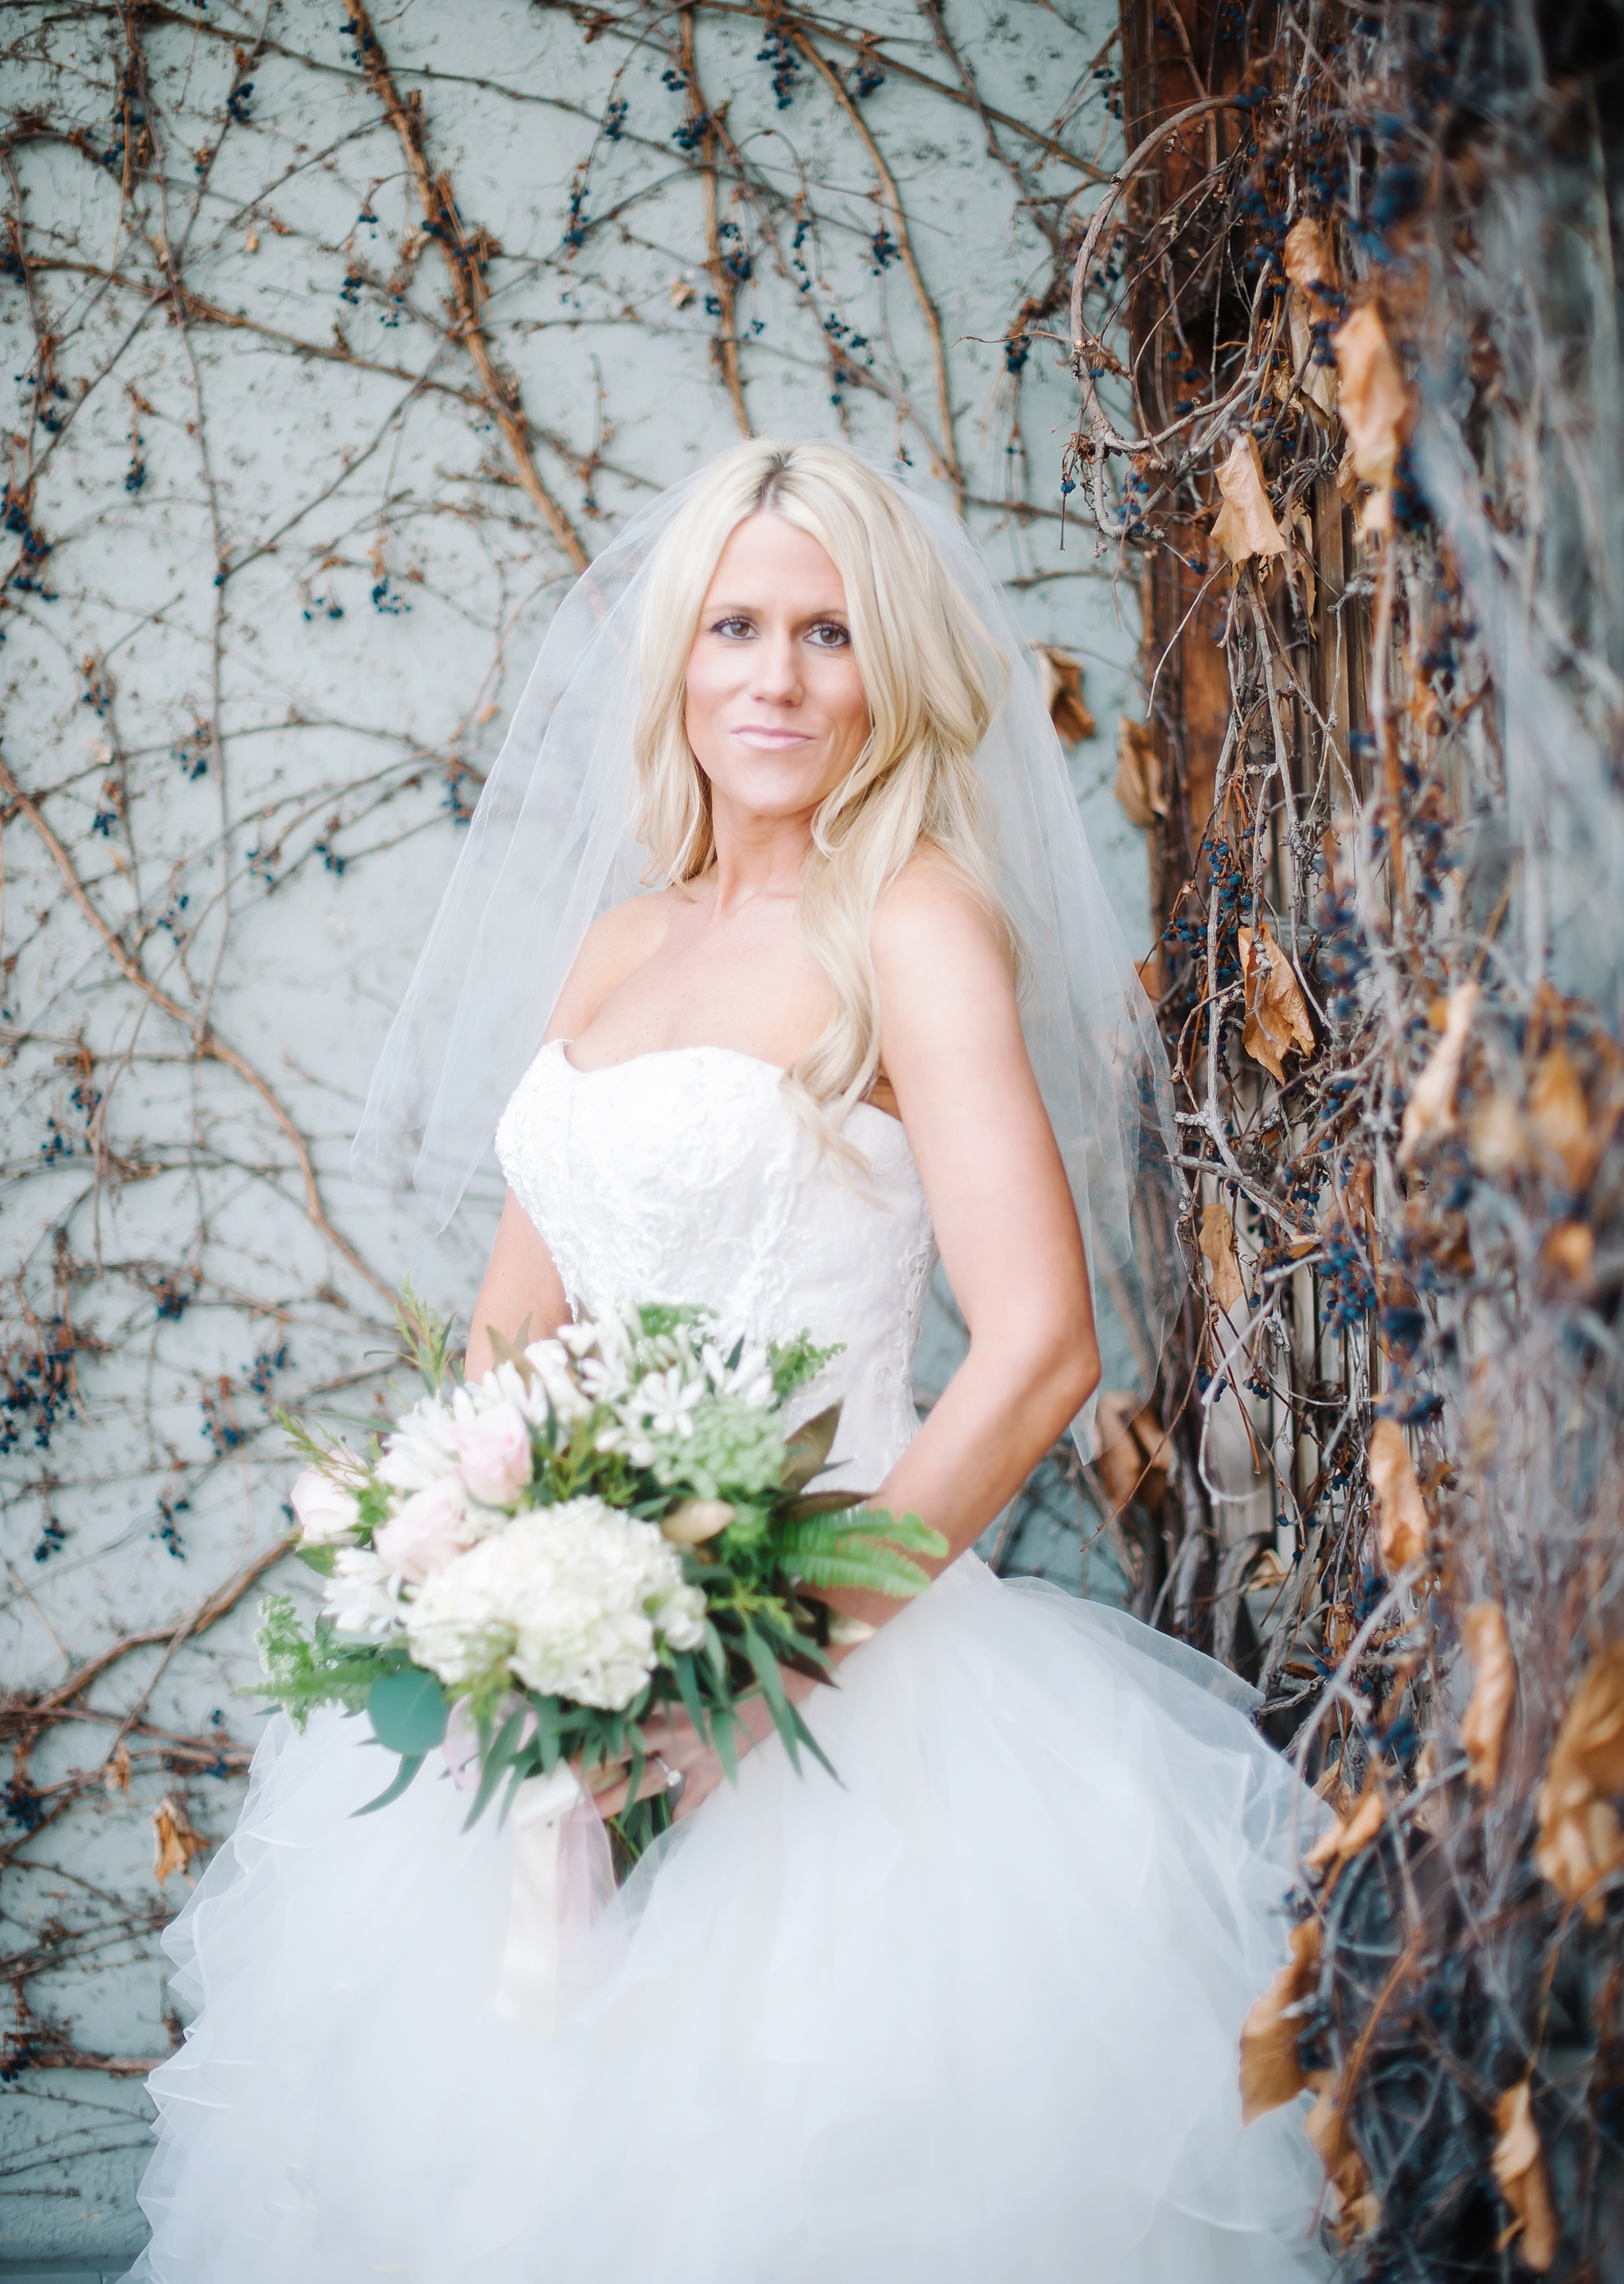 SLC Bridal Photographer Ali Sumsion 013